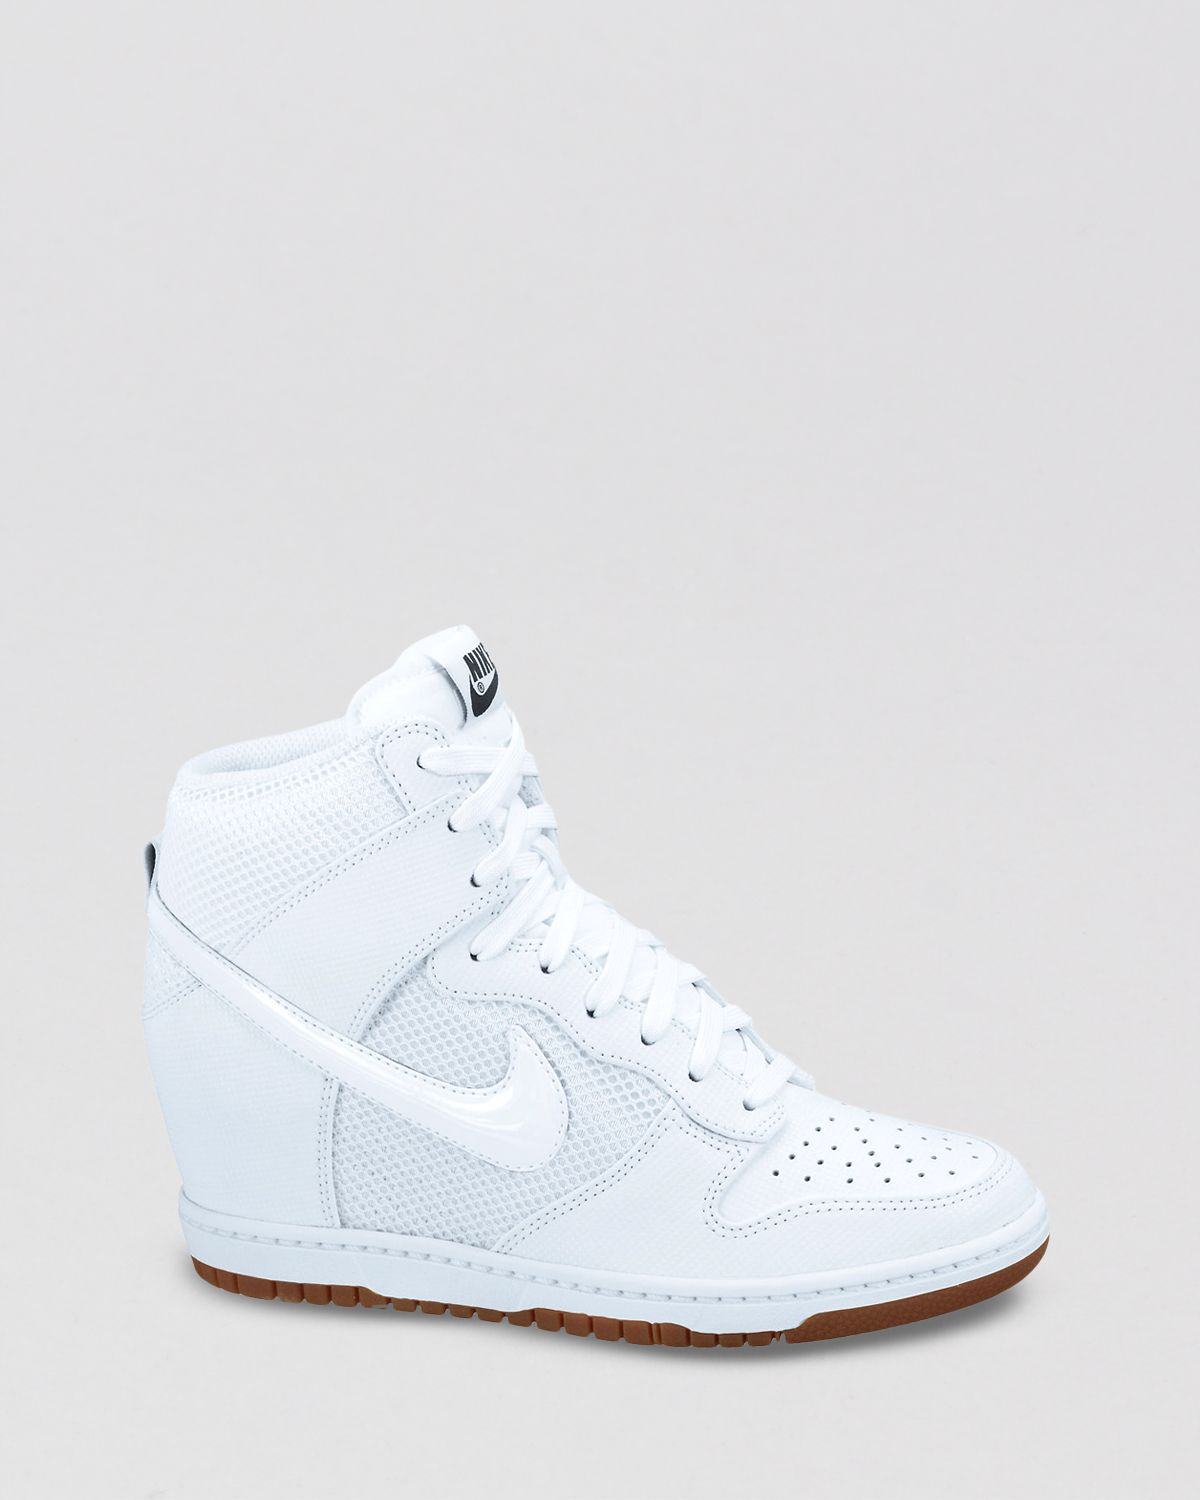 Nike shoes for women high